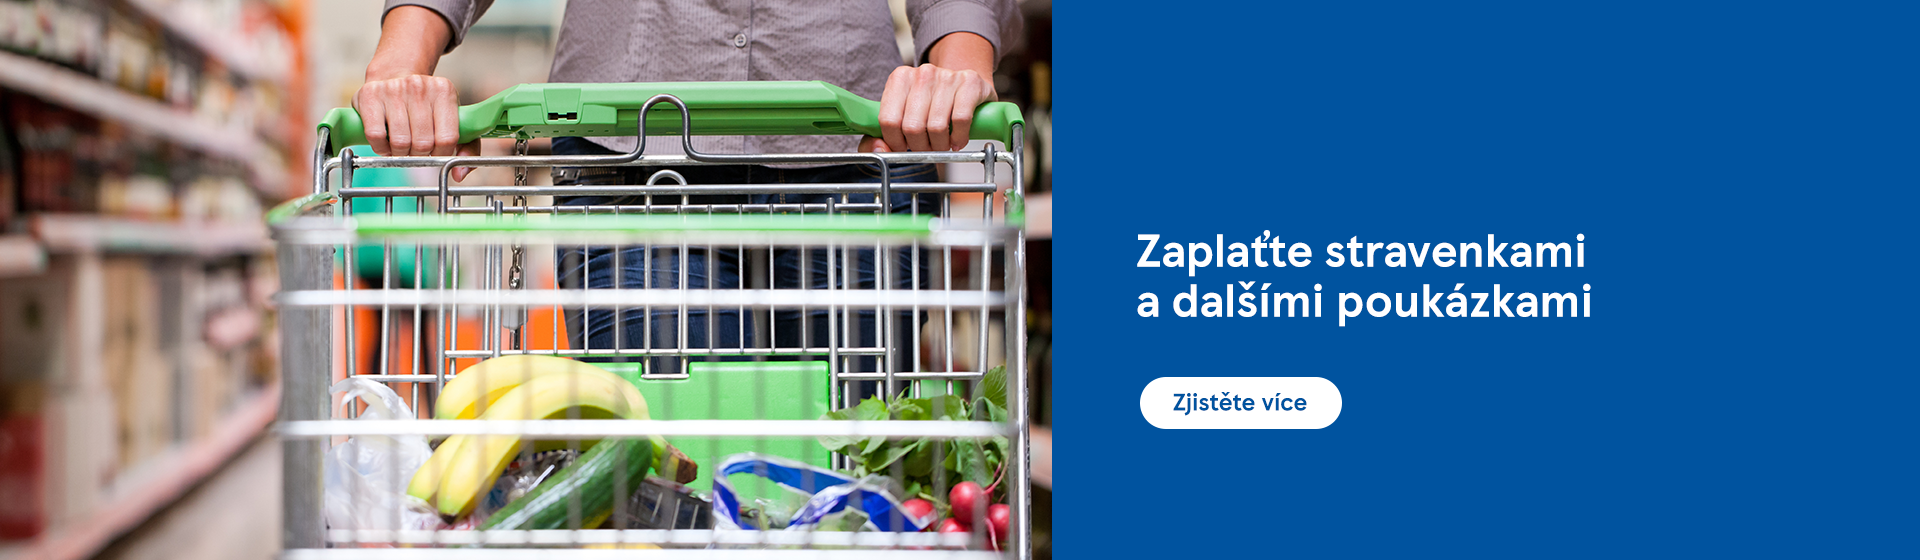 /img/tescoce_cz/upload/slider/desktop/zCz_voucher/vouchers-slider-01.png#960